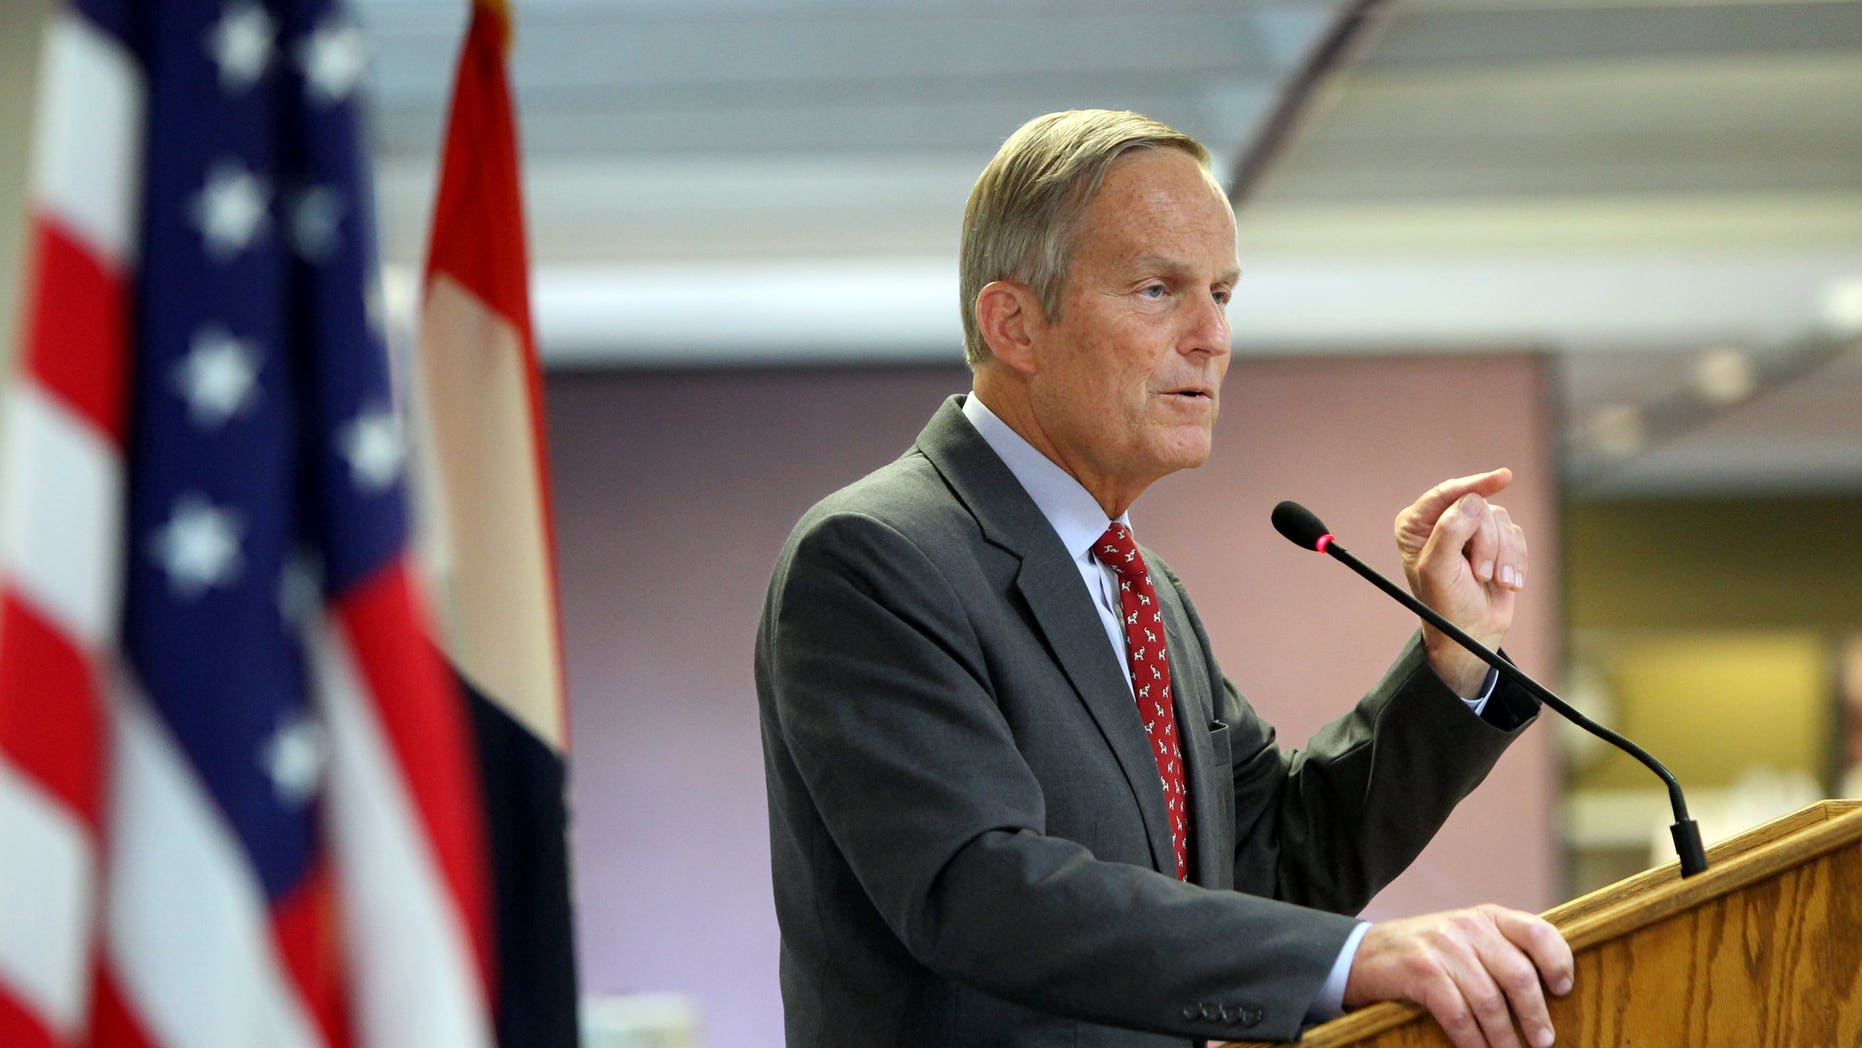 Aug. 10, 2012: File photo - Todd Akin, Republican, candidate for U.S. Senator from Missouri, speaks at the Missouri Farm Bureau candidate interview and endorsement meeting in Jefferson City, Mo.